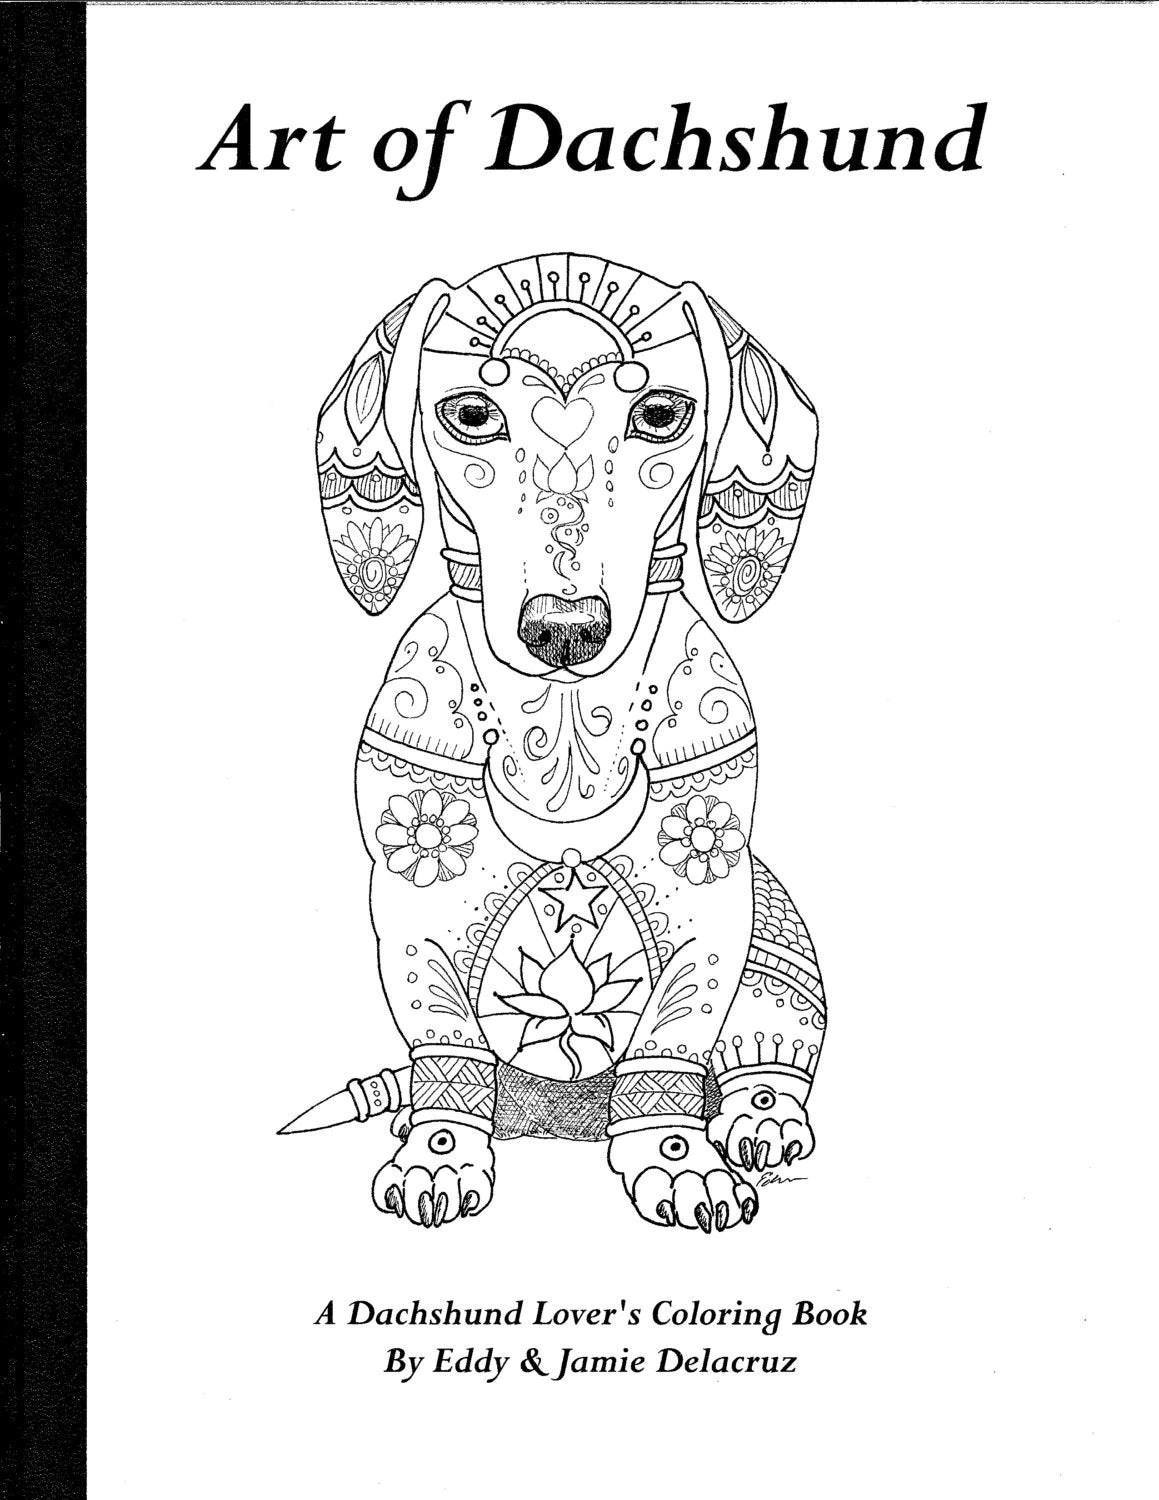 Art of Dachshund Coloring Book Volume No. 1 Physical Book